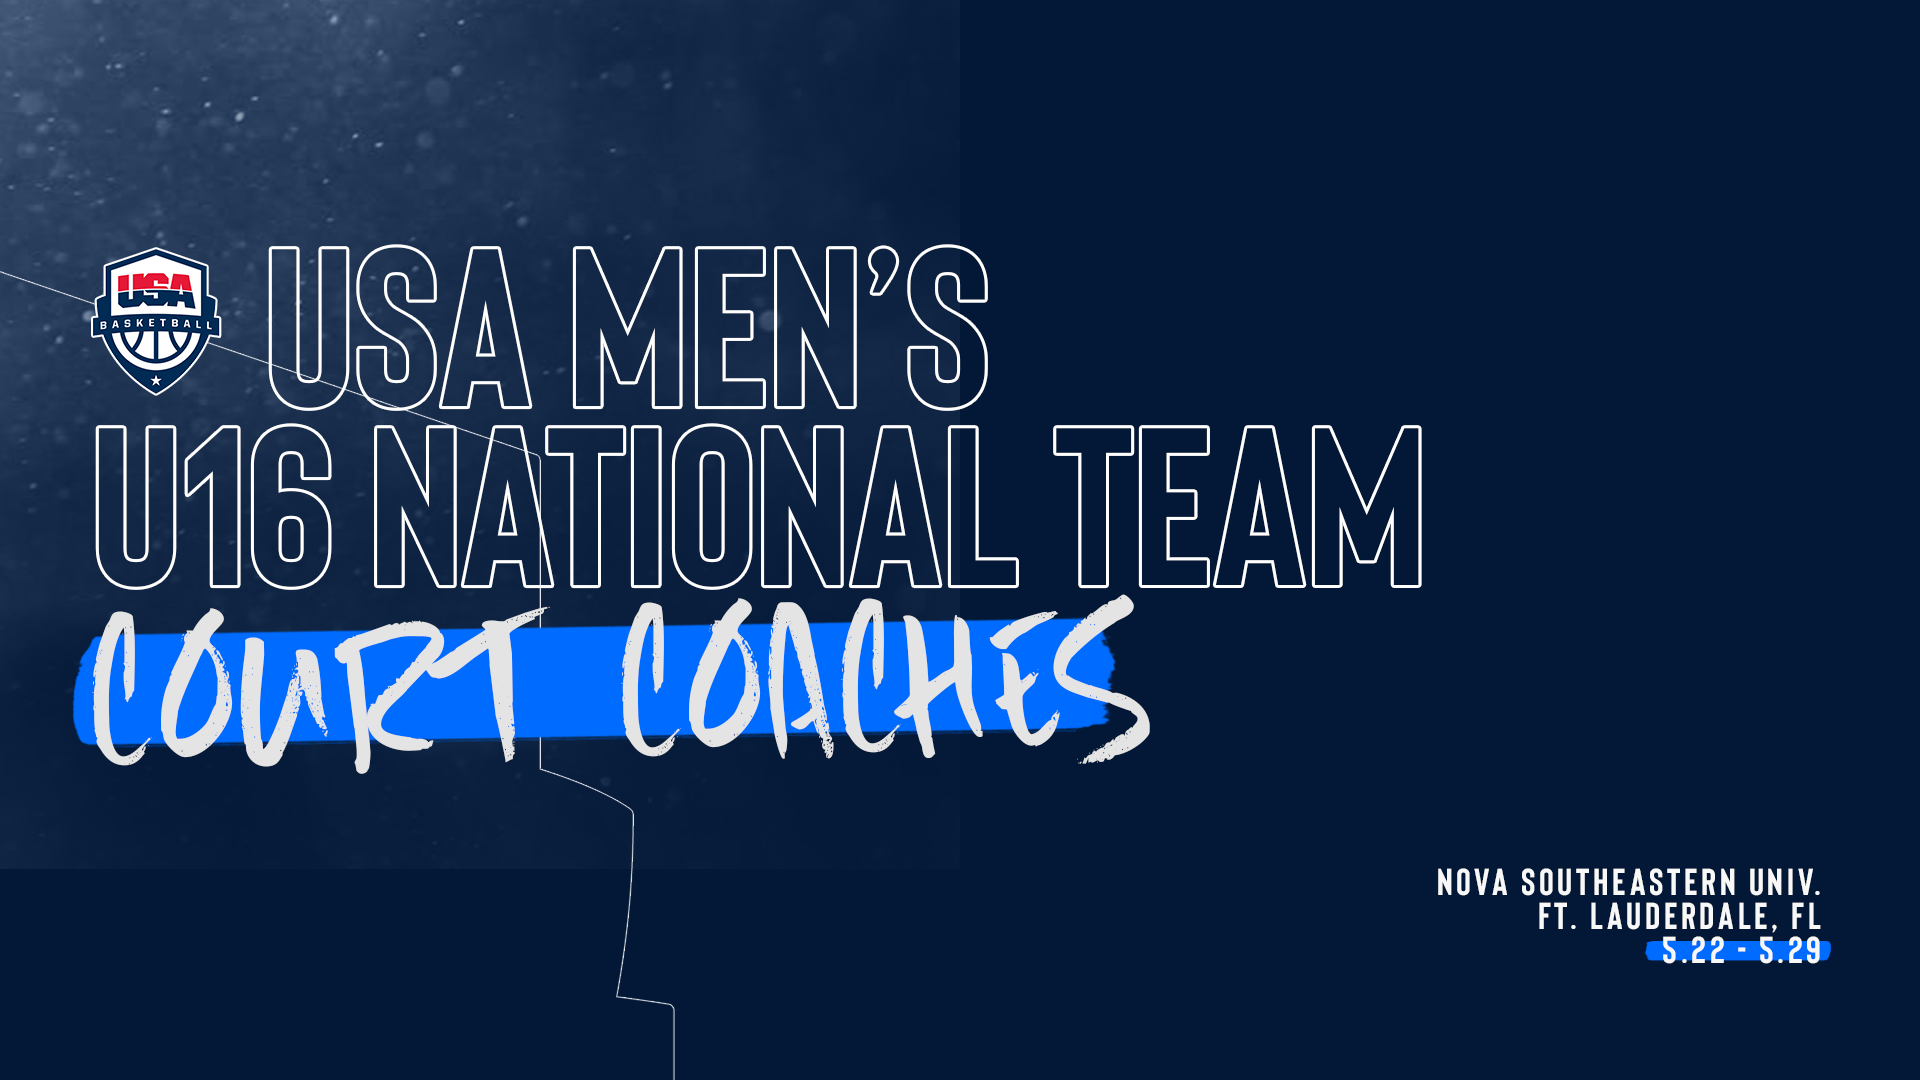 2019 USA Men's U16 Court Coaches